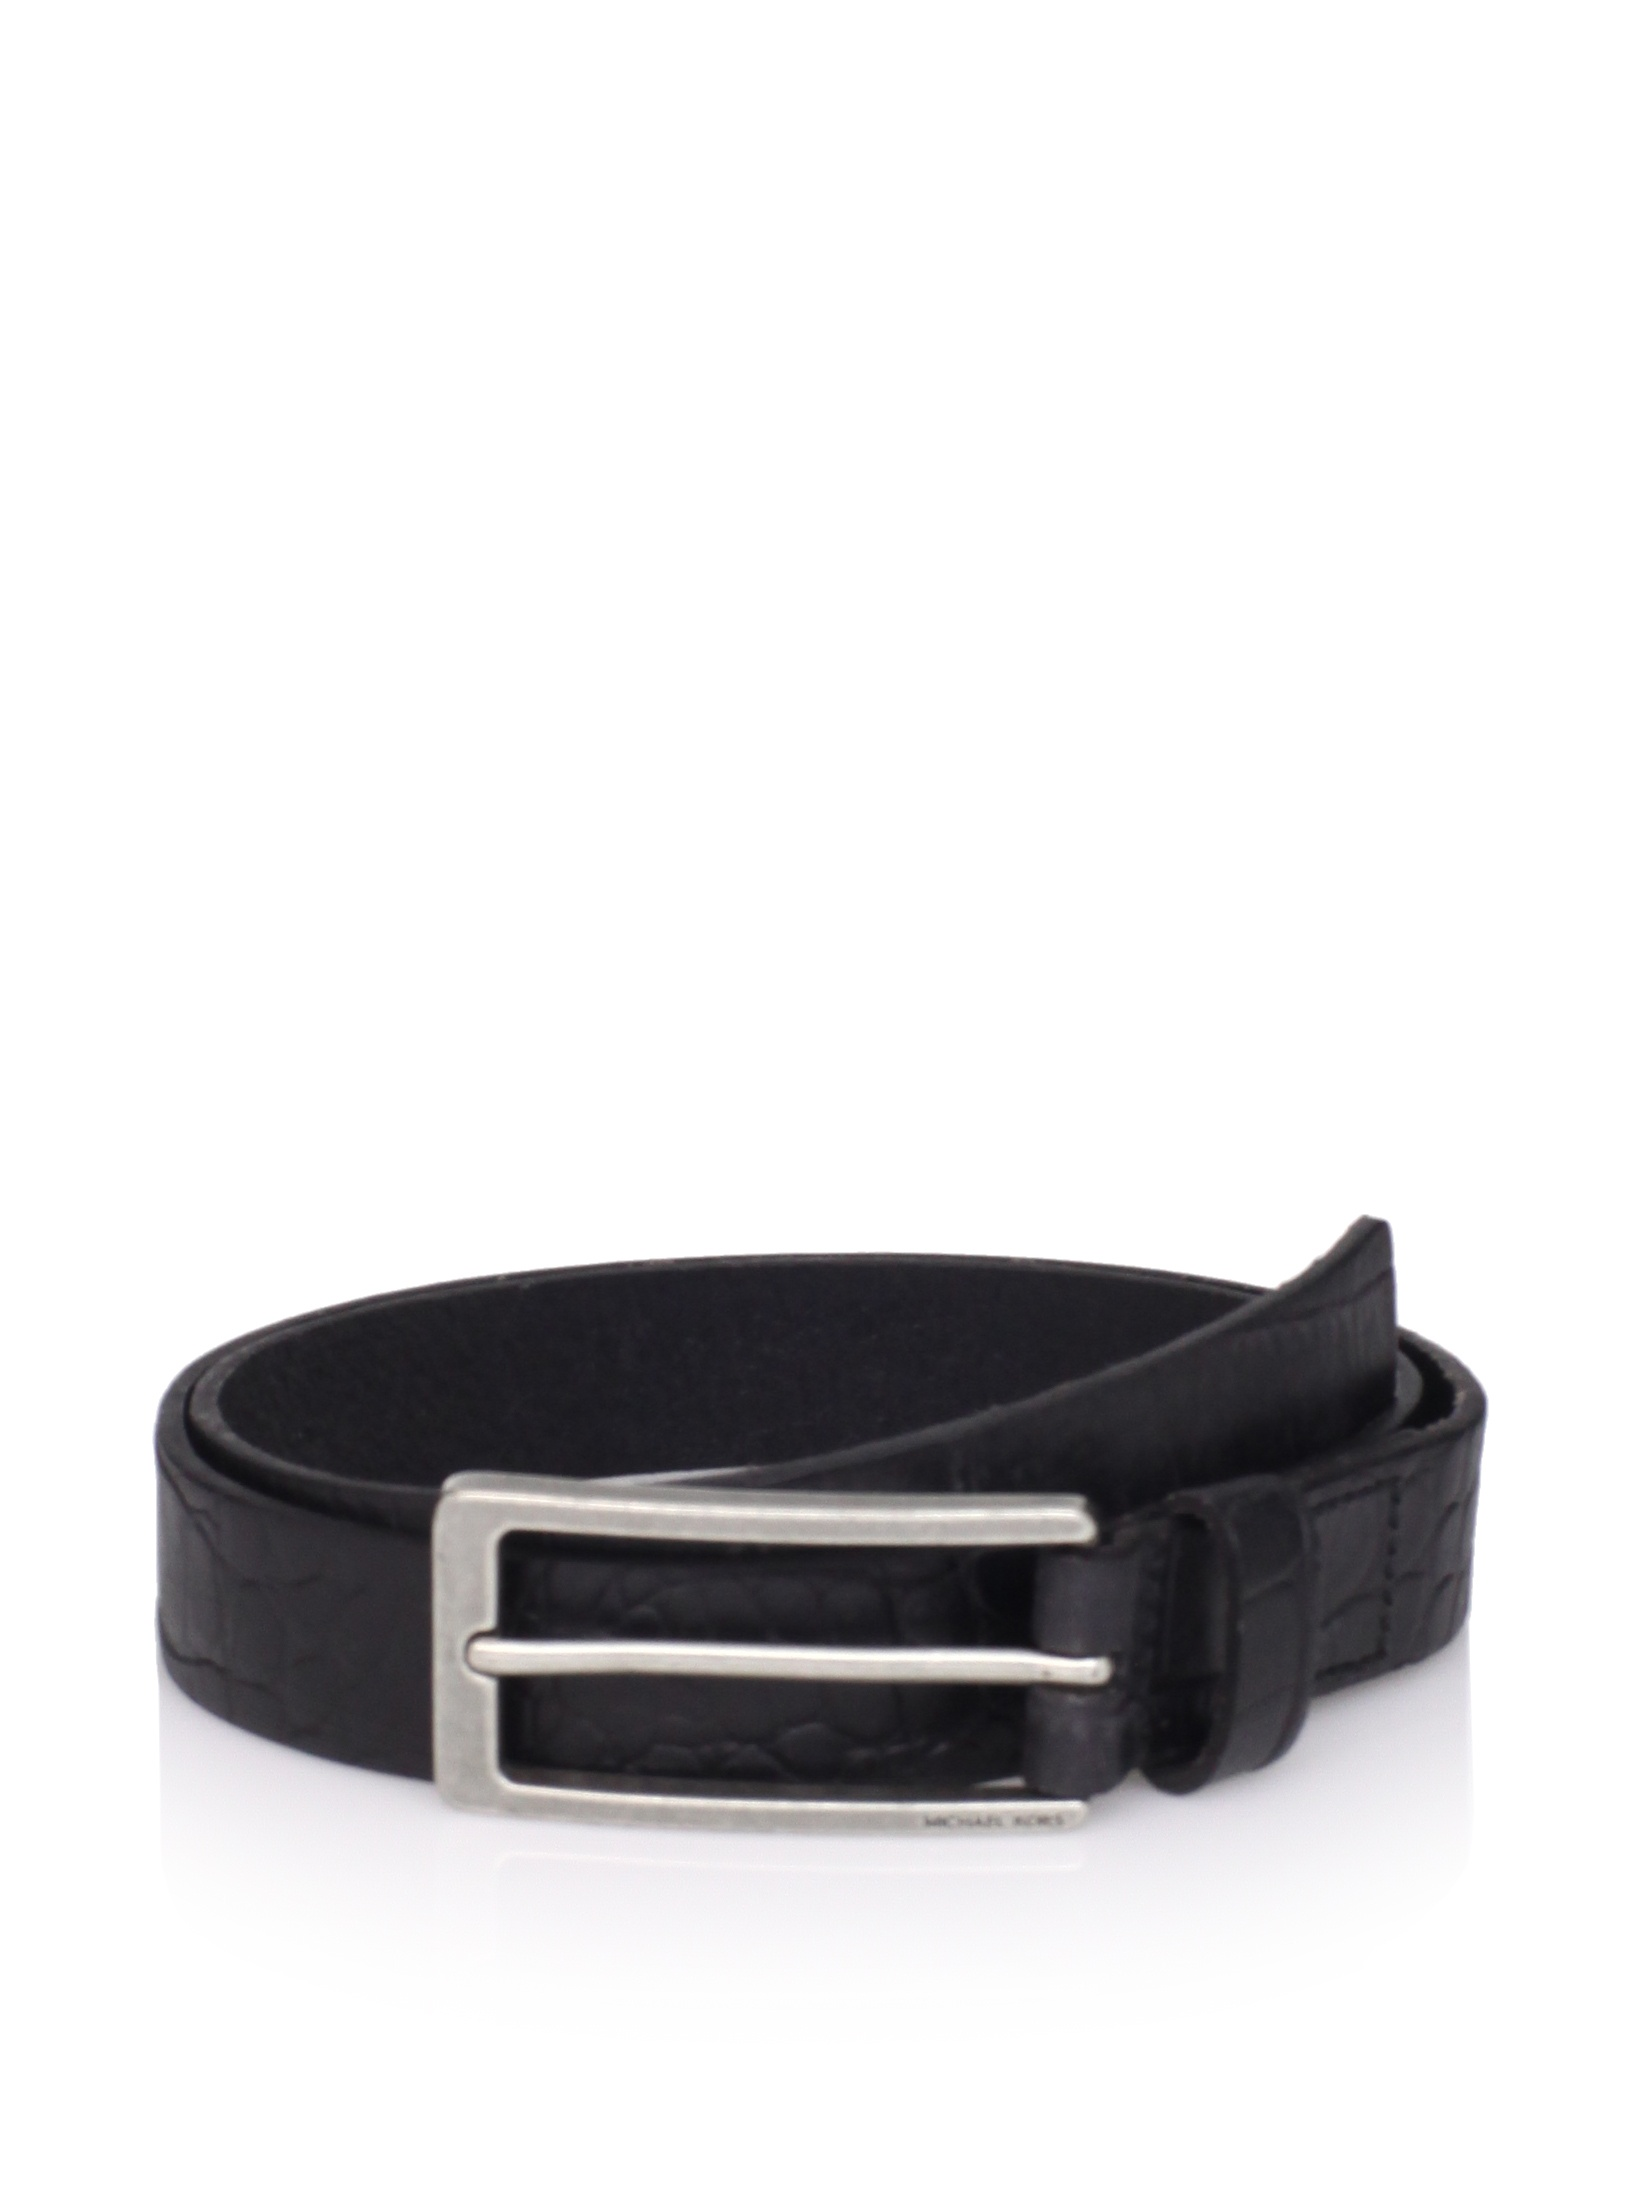 Michael Kors Men's Croc-Embossed Belt (Black)